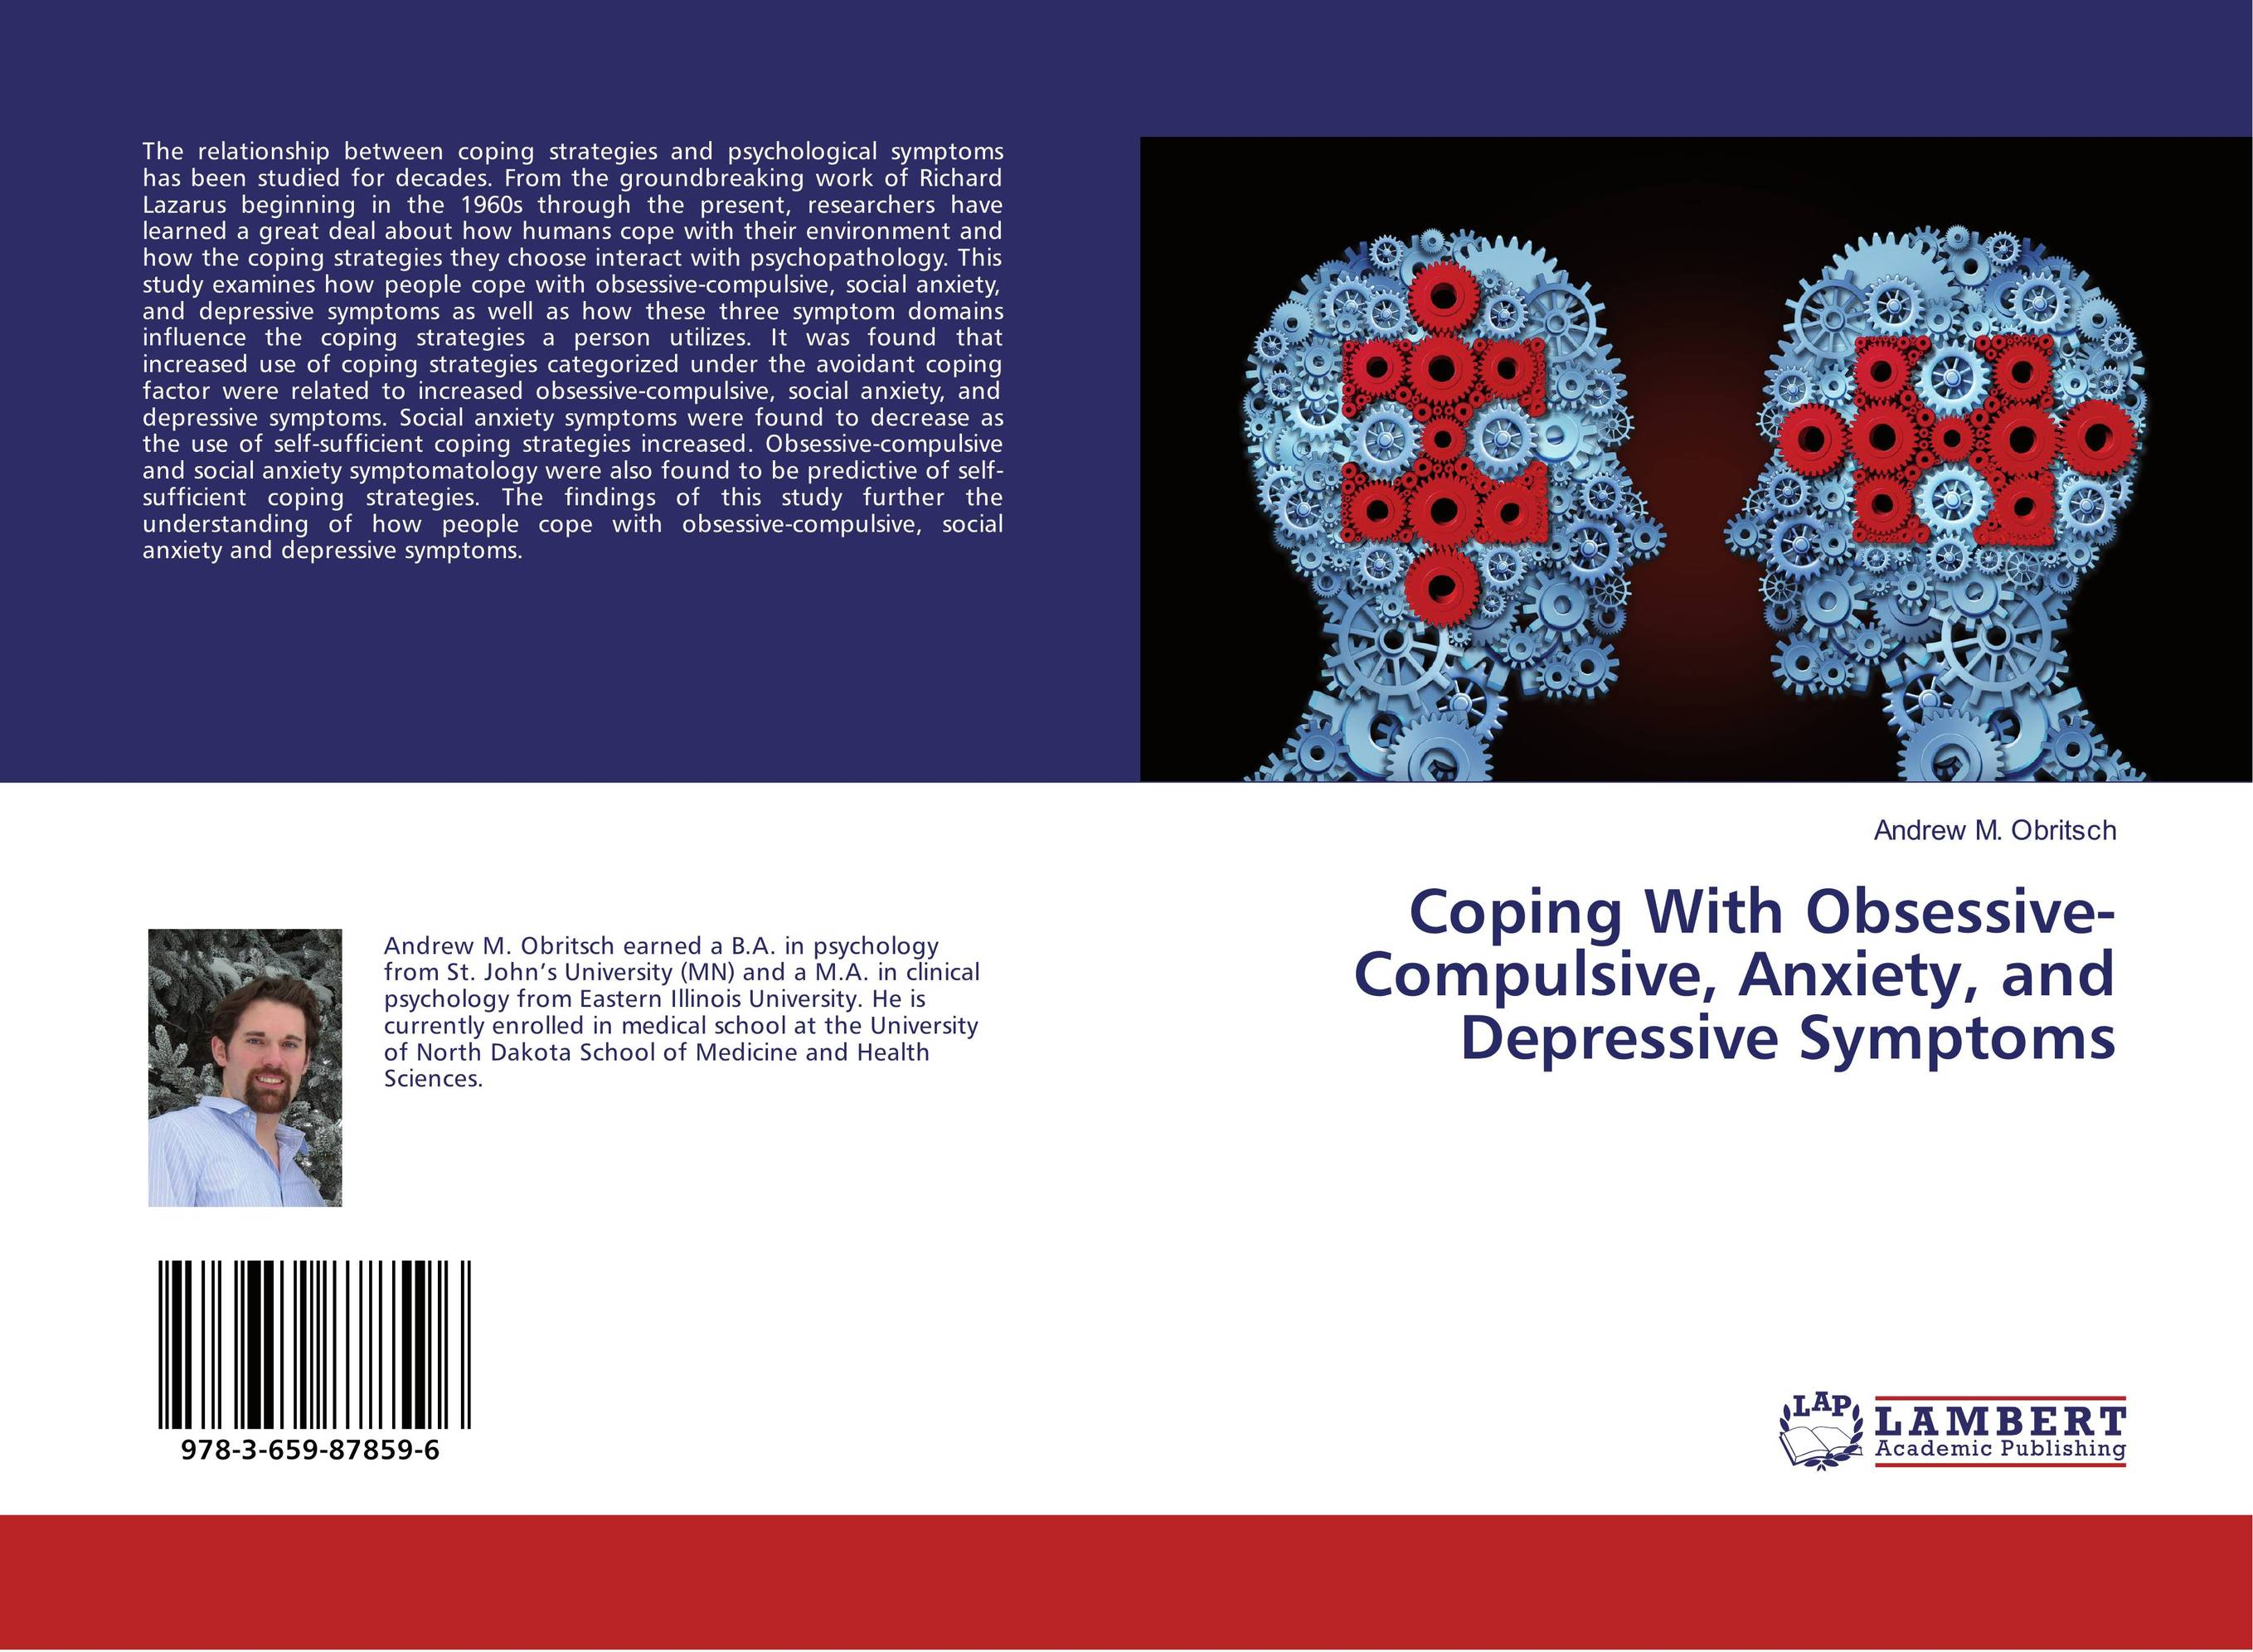 Coping With Obsessive-Compulsive, Anxiety, and Depressive Symptoms